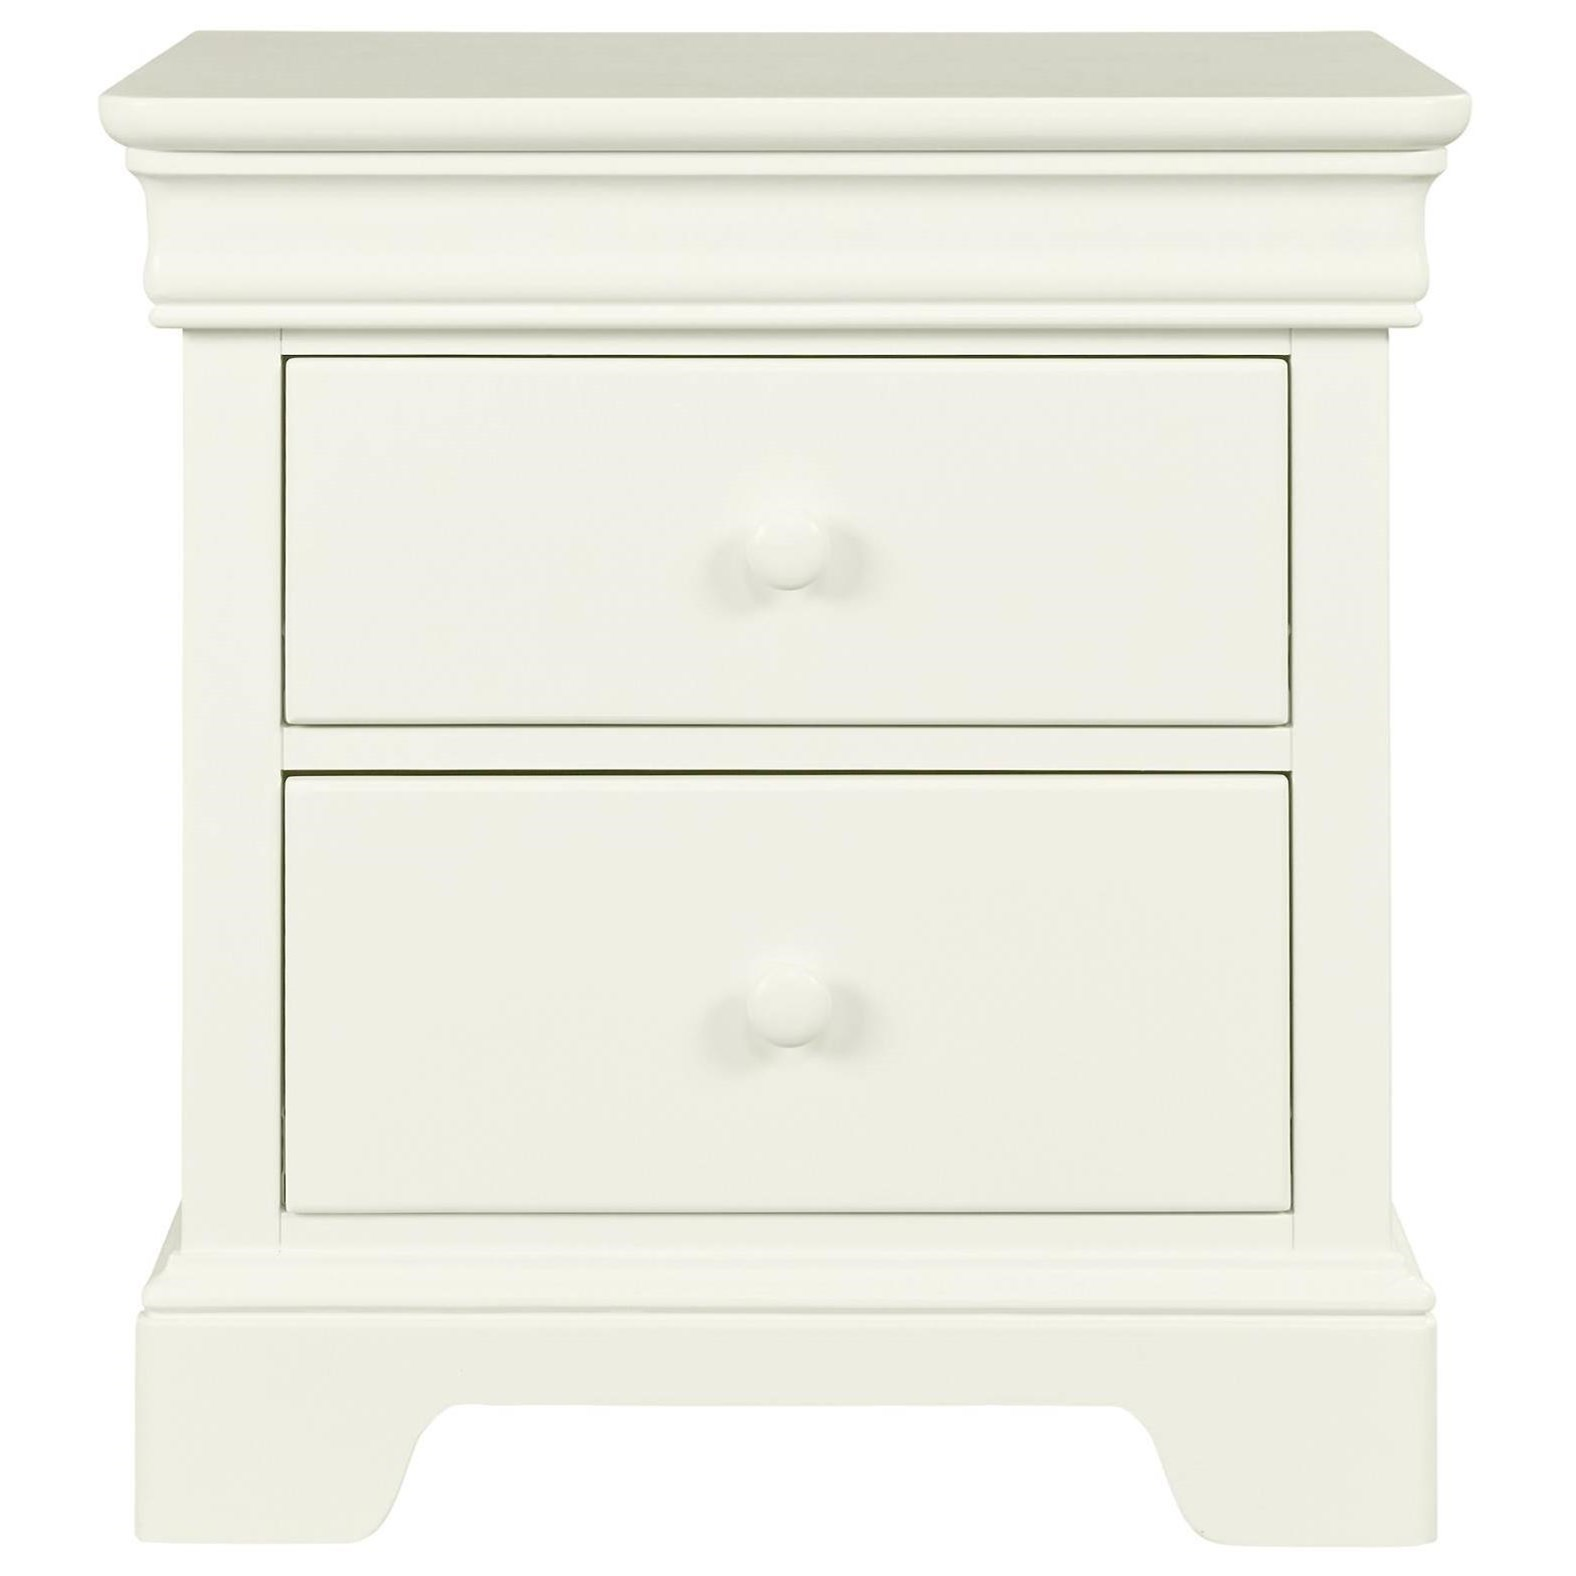 Stone & Leigh Furniture Teaberry Lane Nightstand - Item Number: 575-23-82